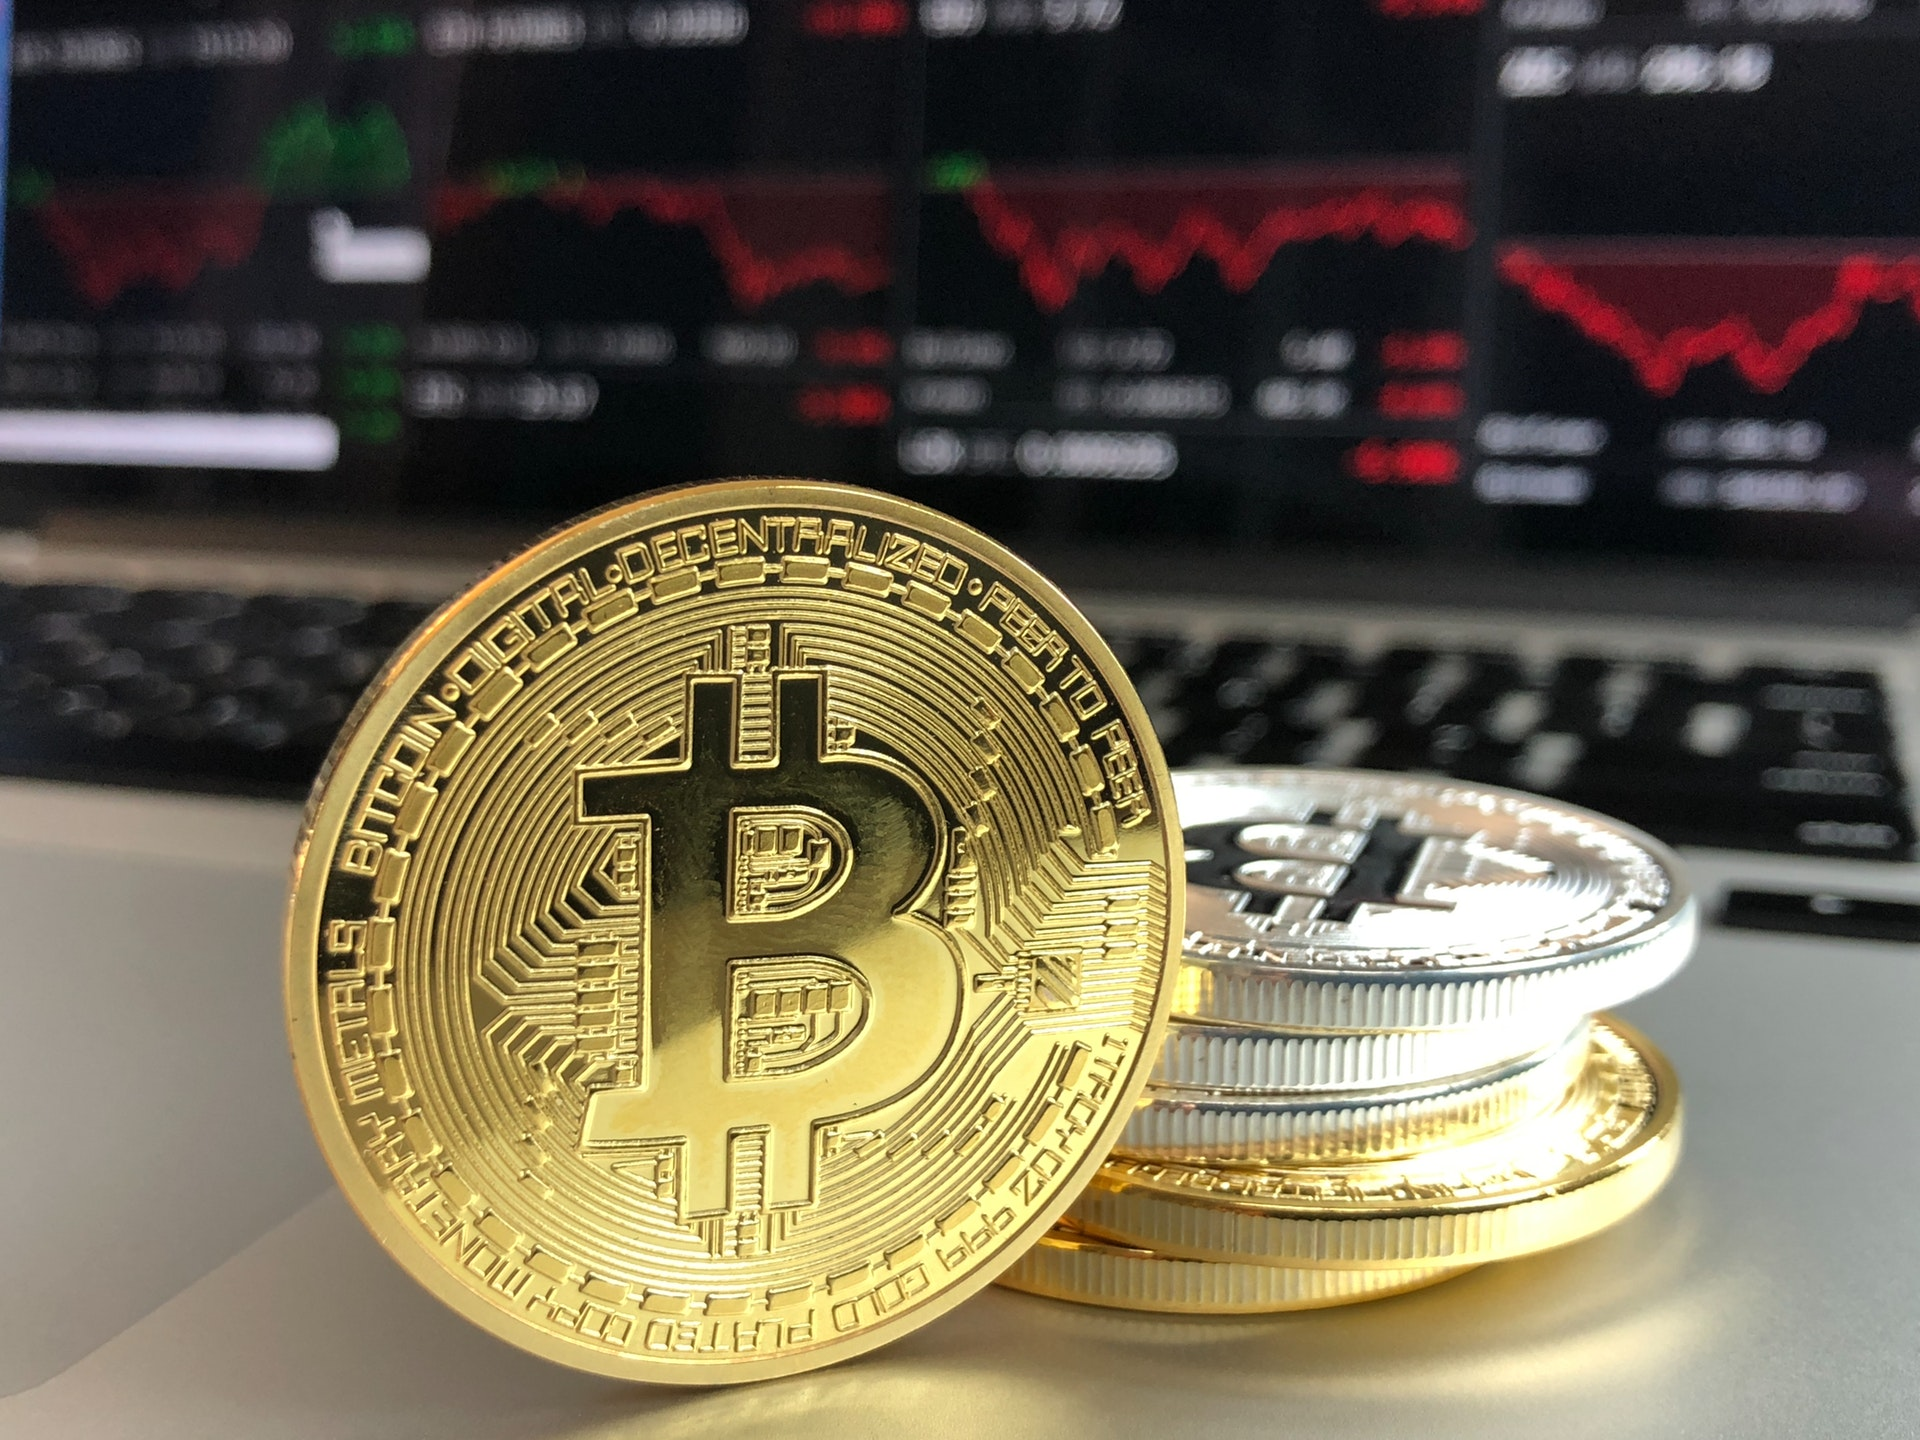 JP Morgan Bitcoin BTC Price 2019